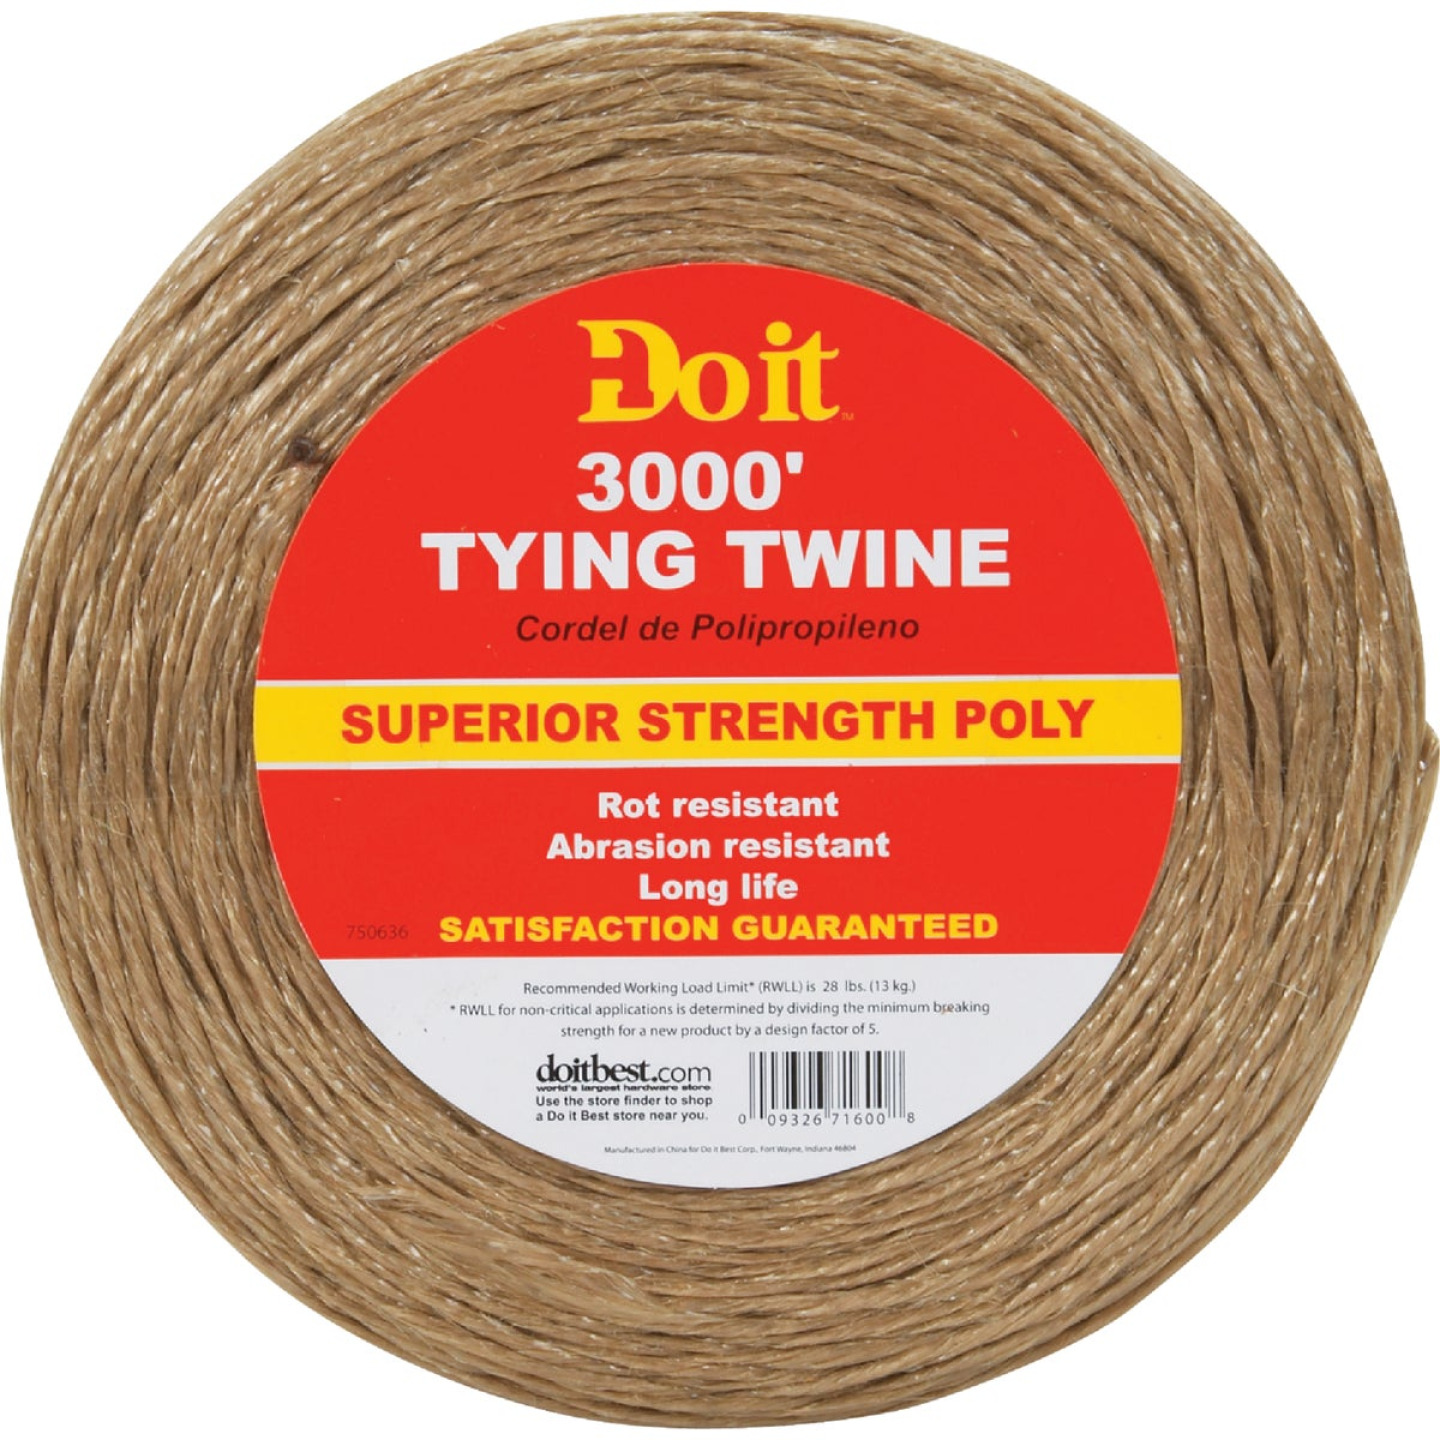 Do it 5/64 In. x 3000 Ft. Brown Polypropylene Tying Twine Image 1